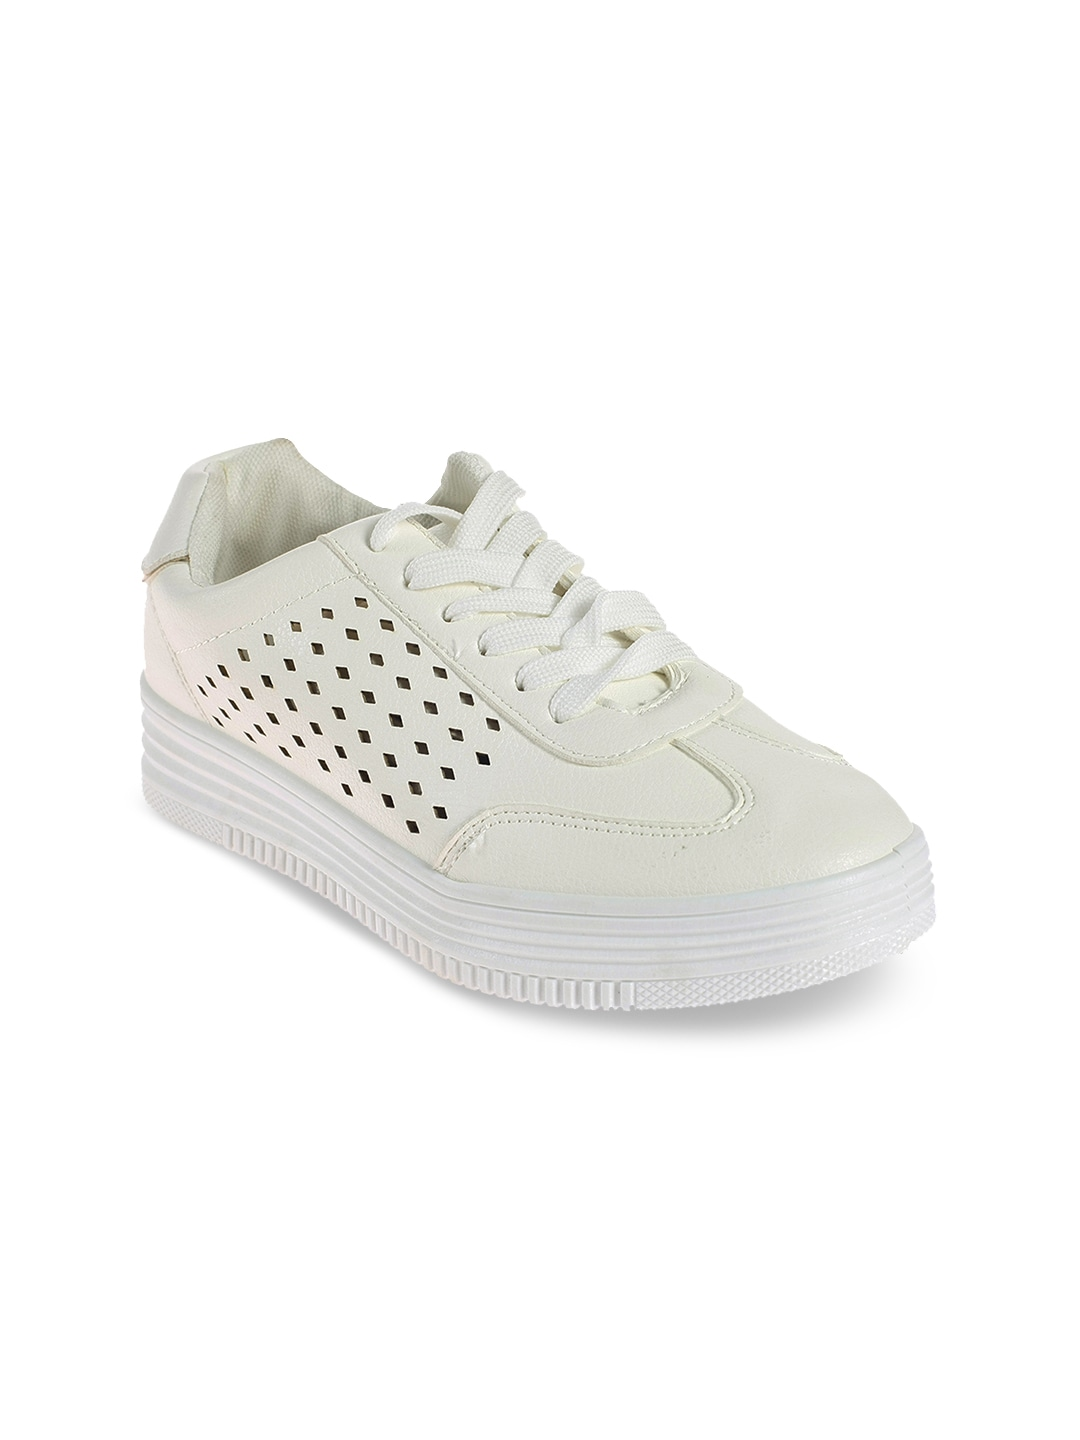 Off-White Solid Laser Cut Sneakers